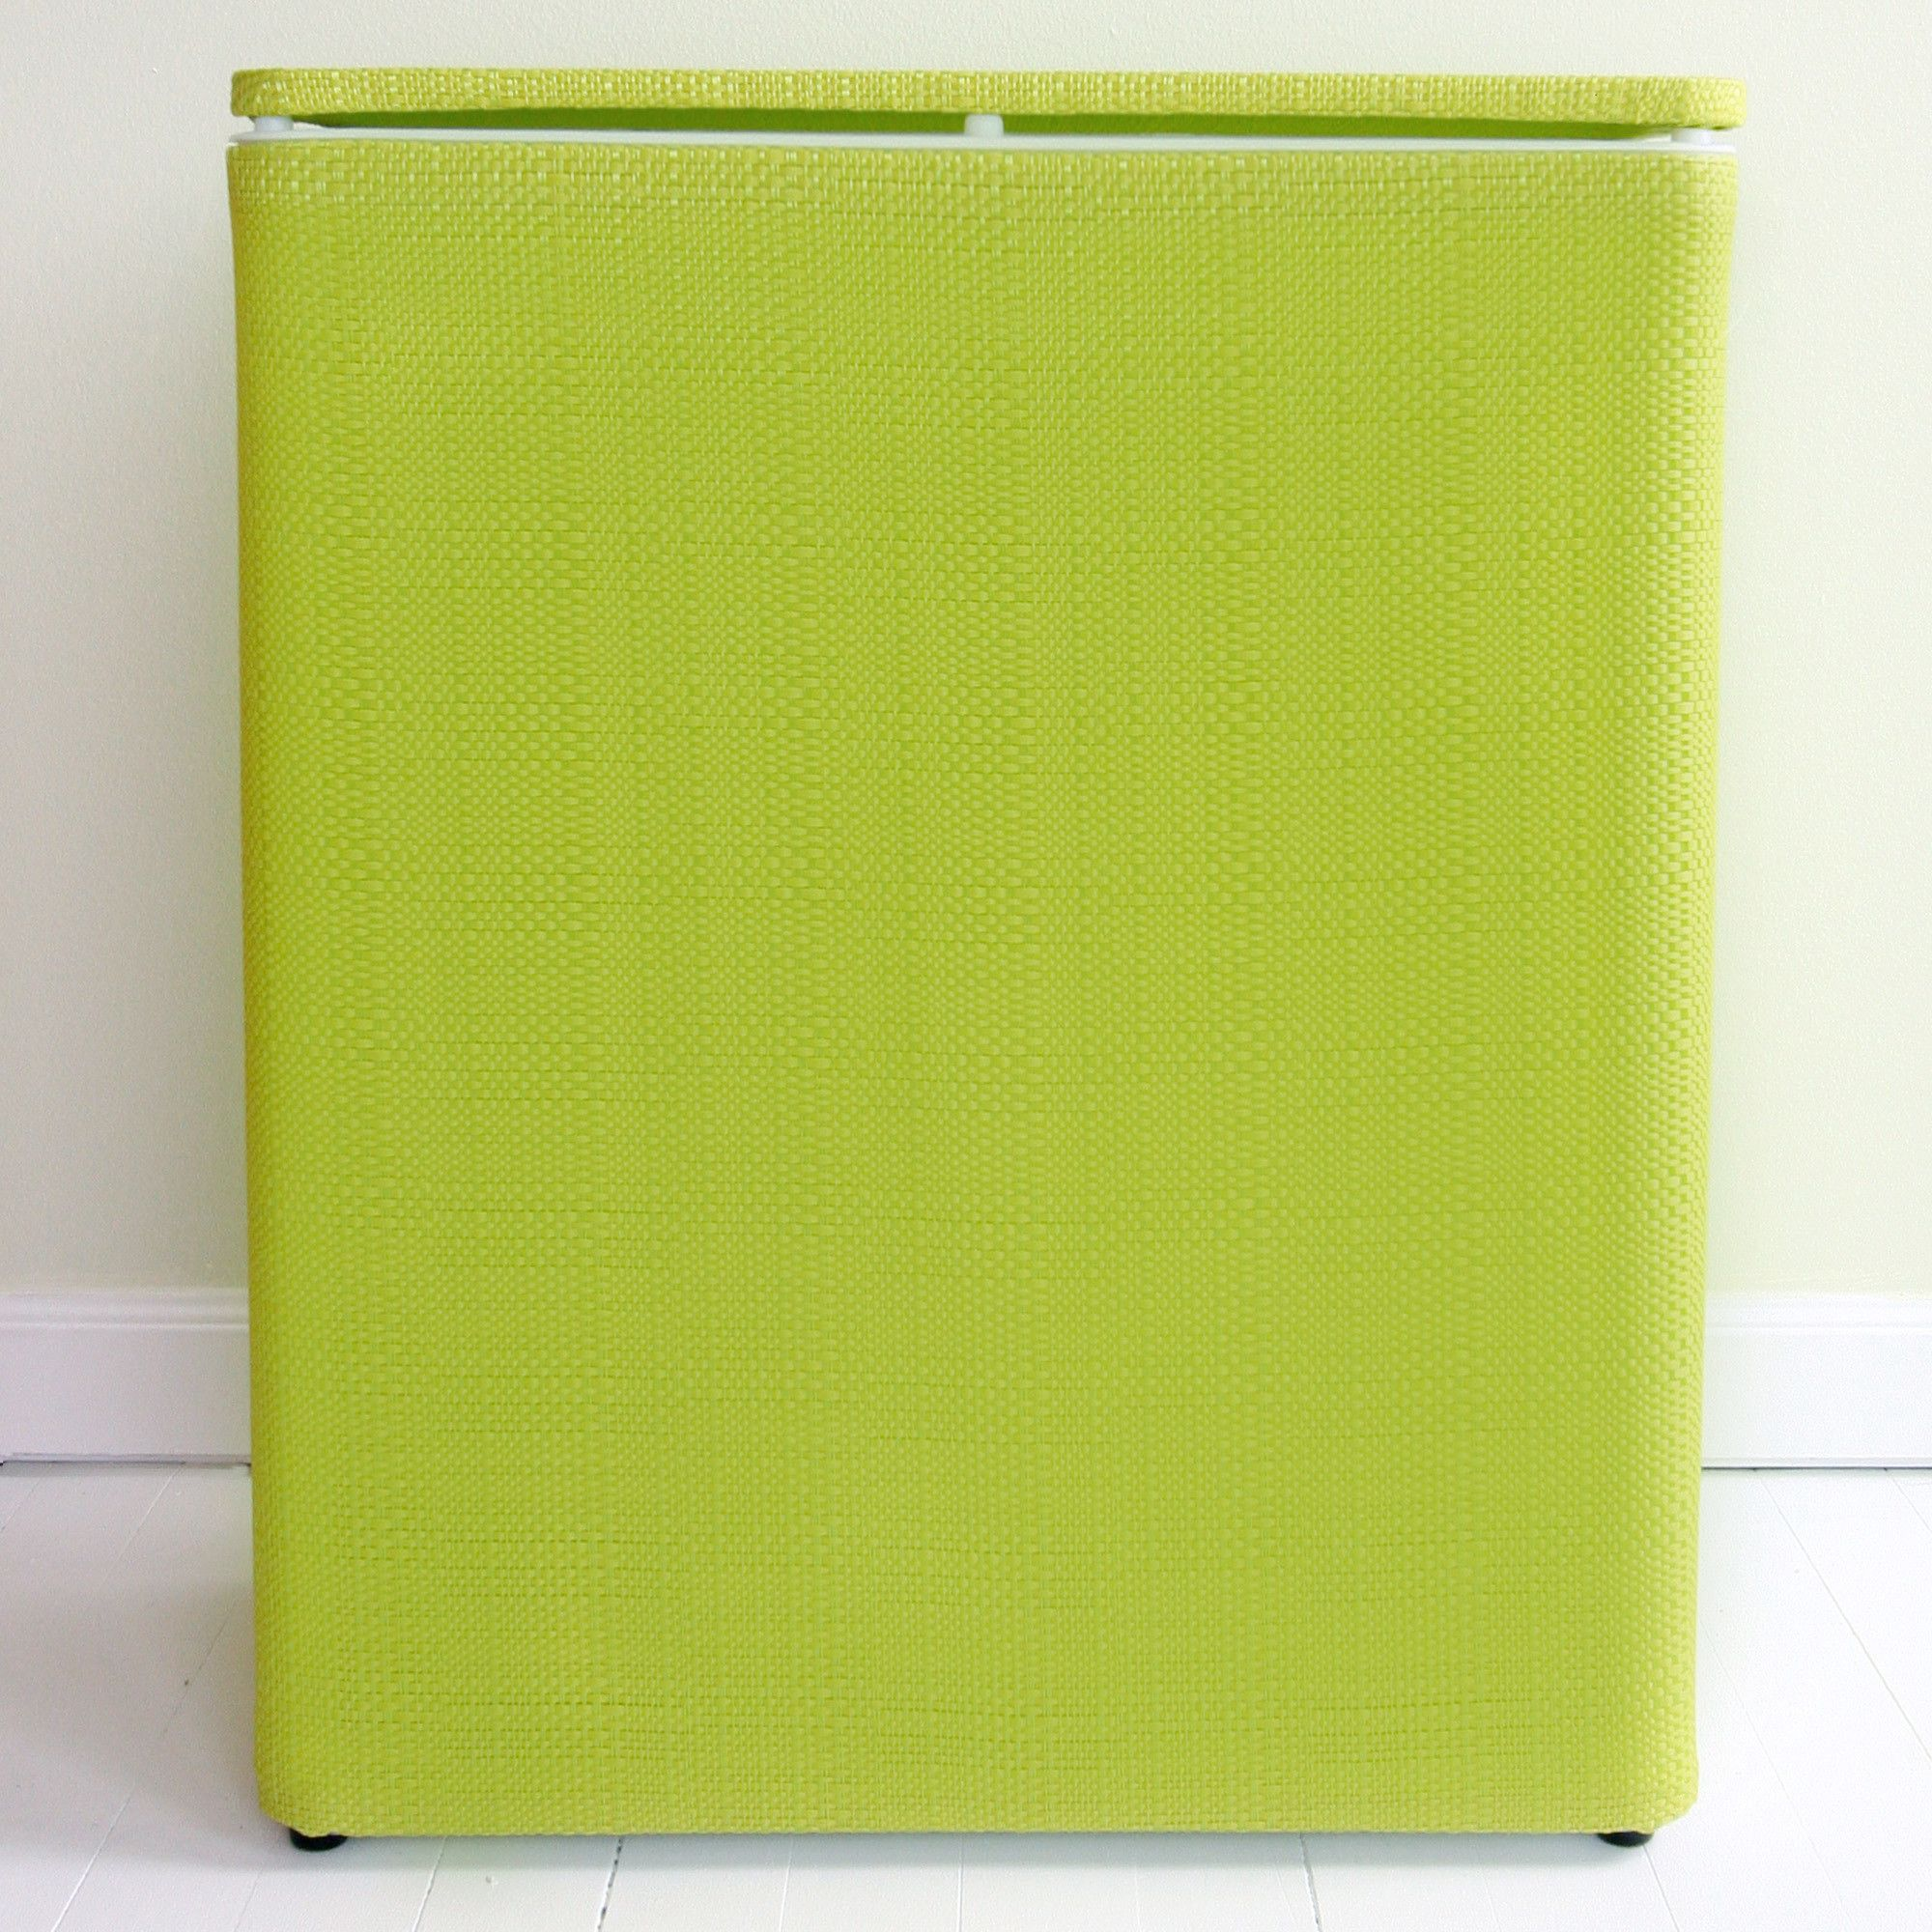 Traditional Laundry Hamper Home kitchens, Cleaning wipes